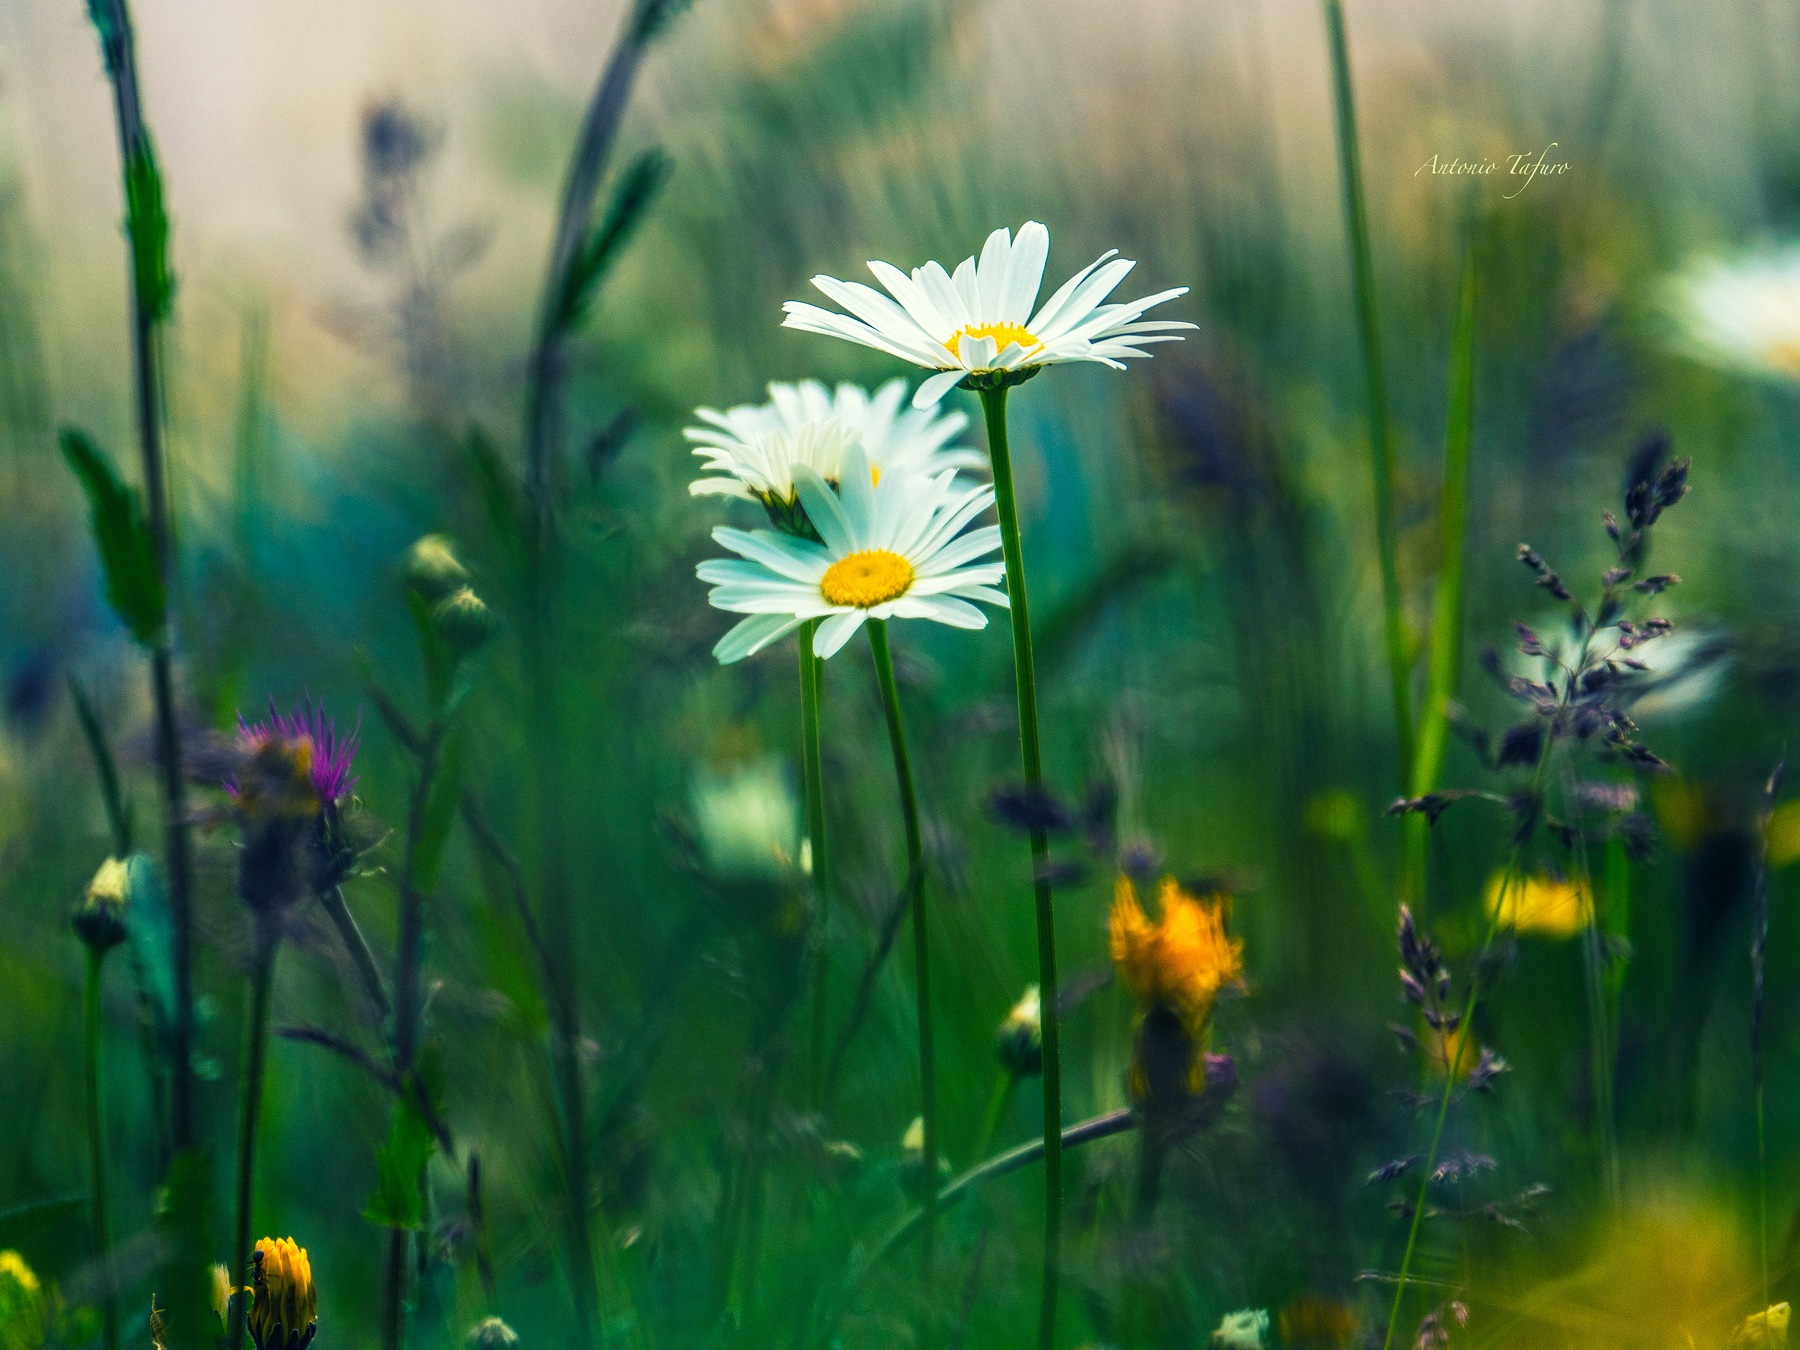 wildflowers by Antonio Tafuro